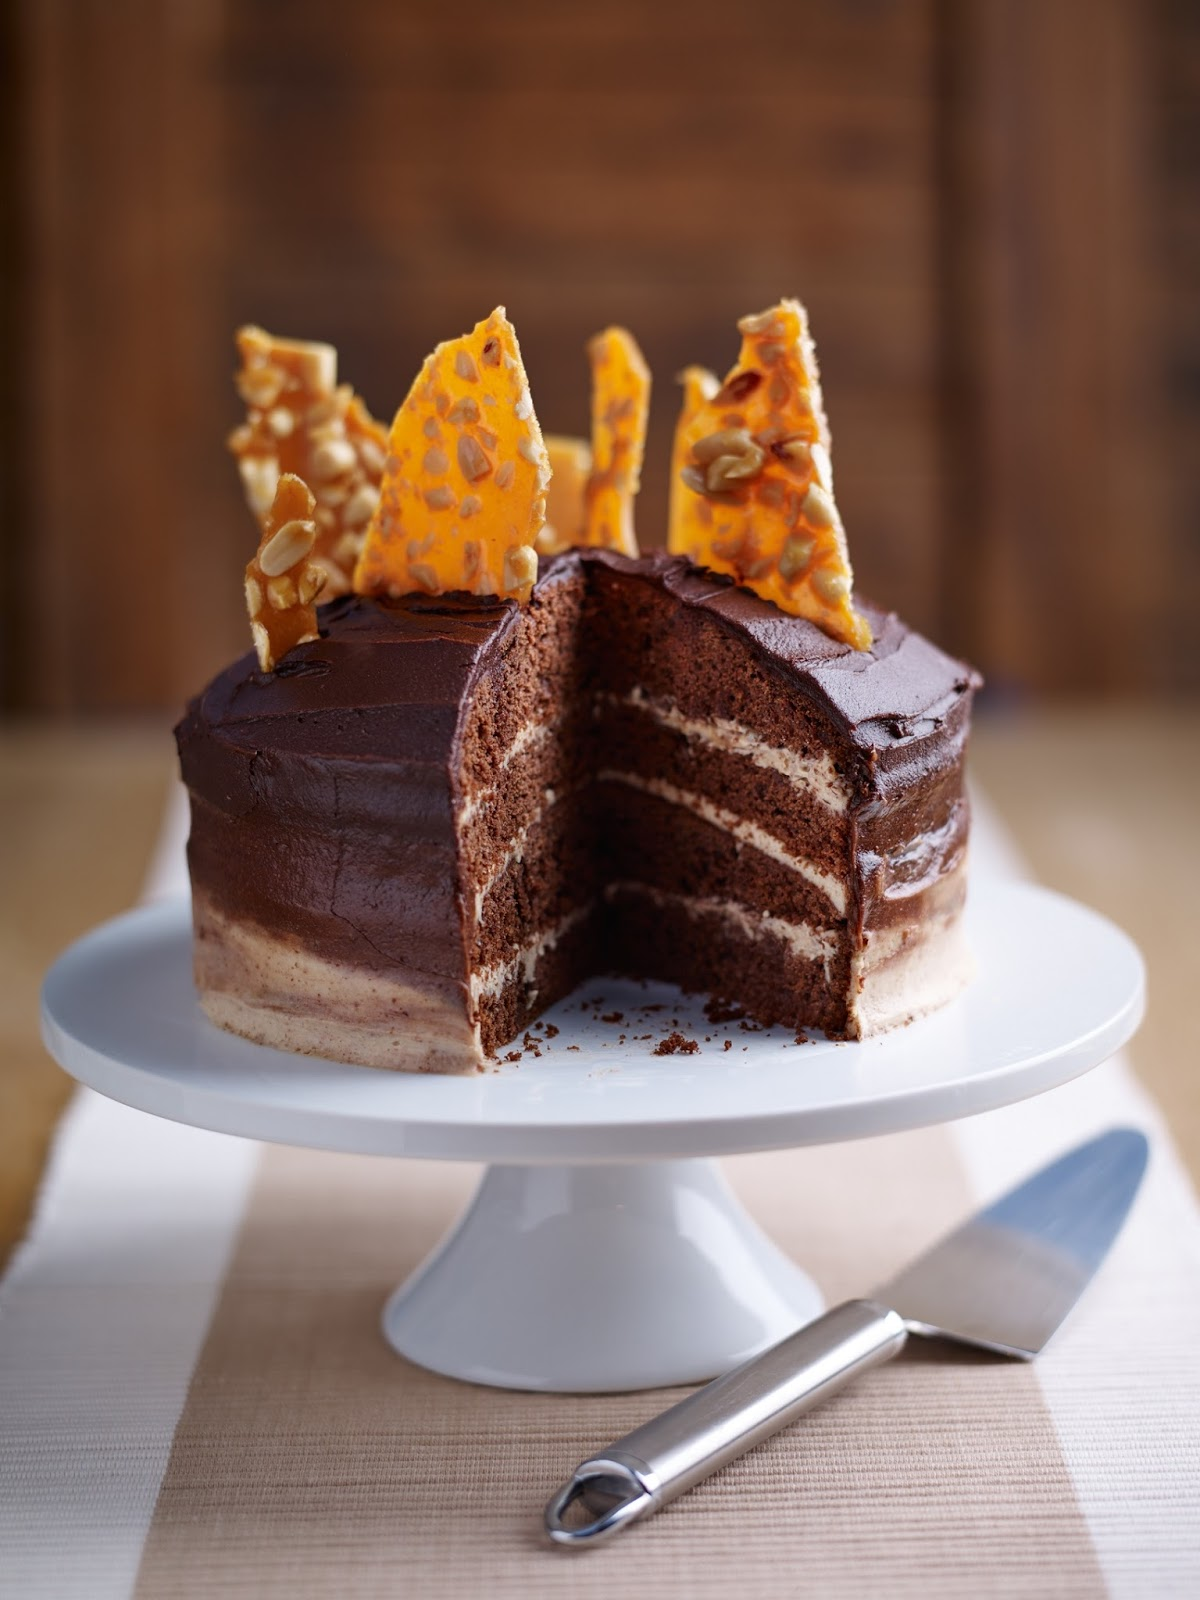 Ombre Chocolate Peanut Butter Celebration Cake